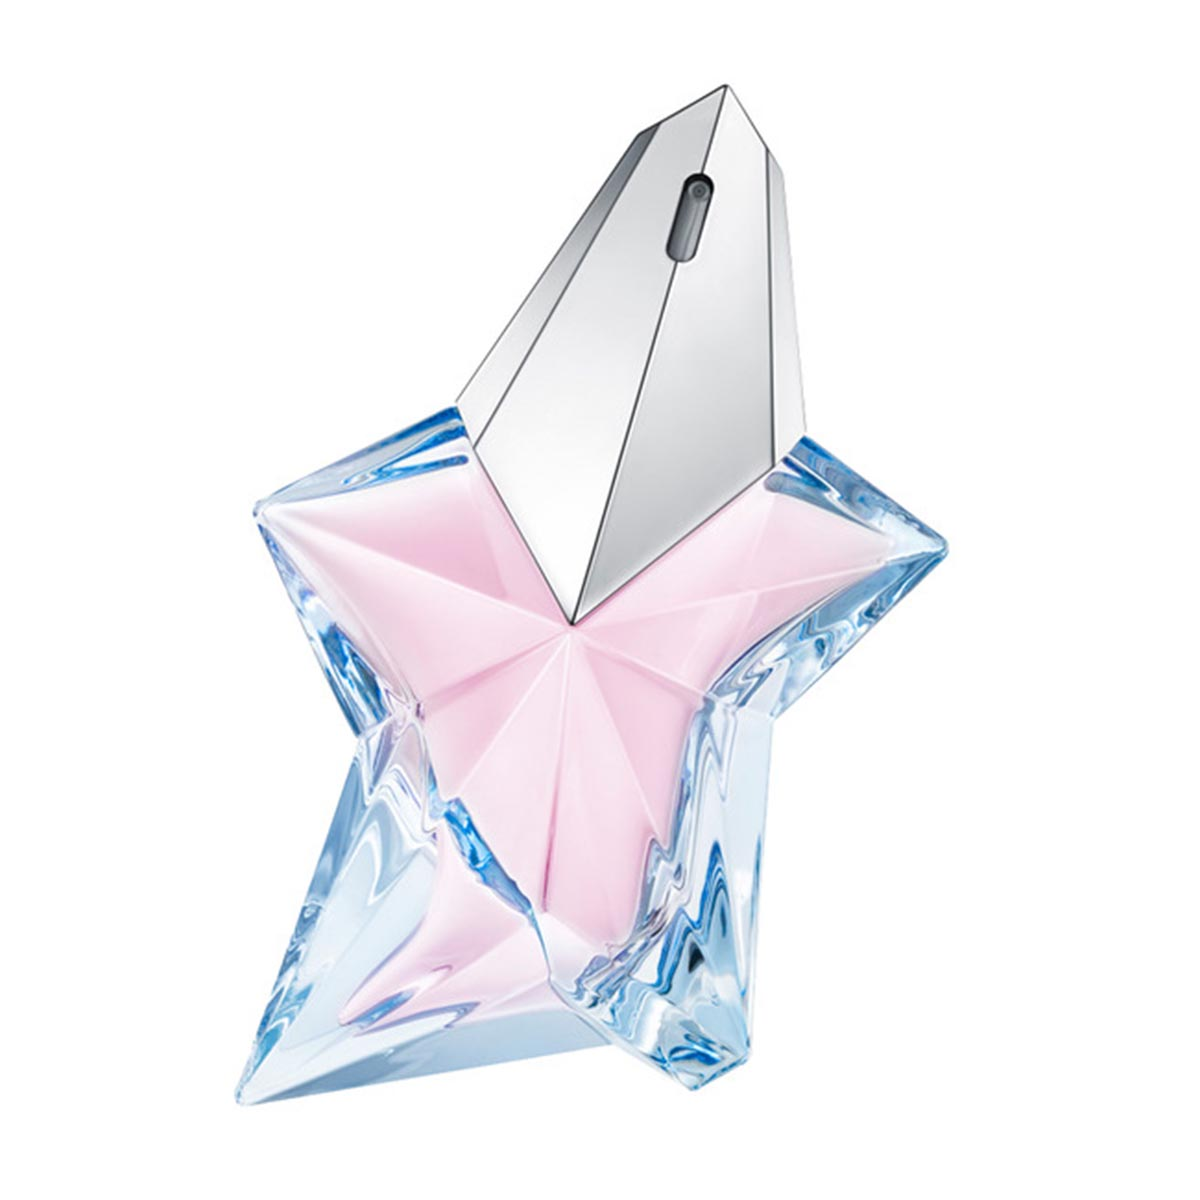 Thierry mugler angel eau de toilette 30ml vaporizador rechargable